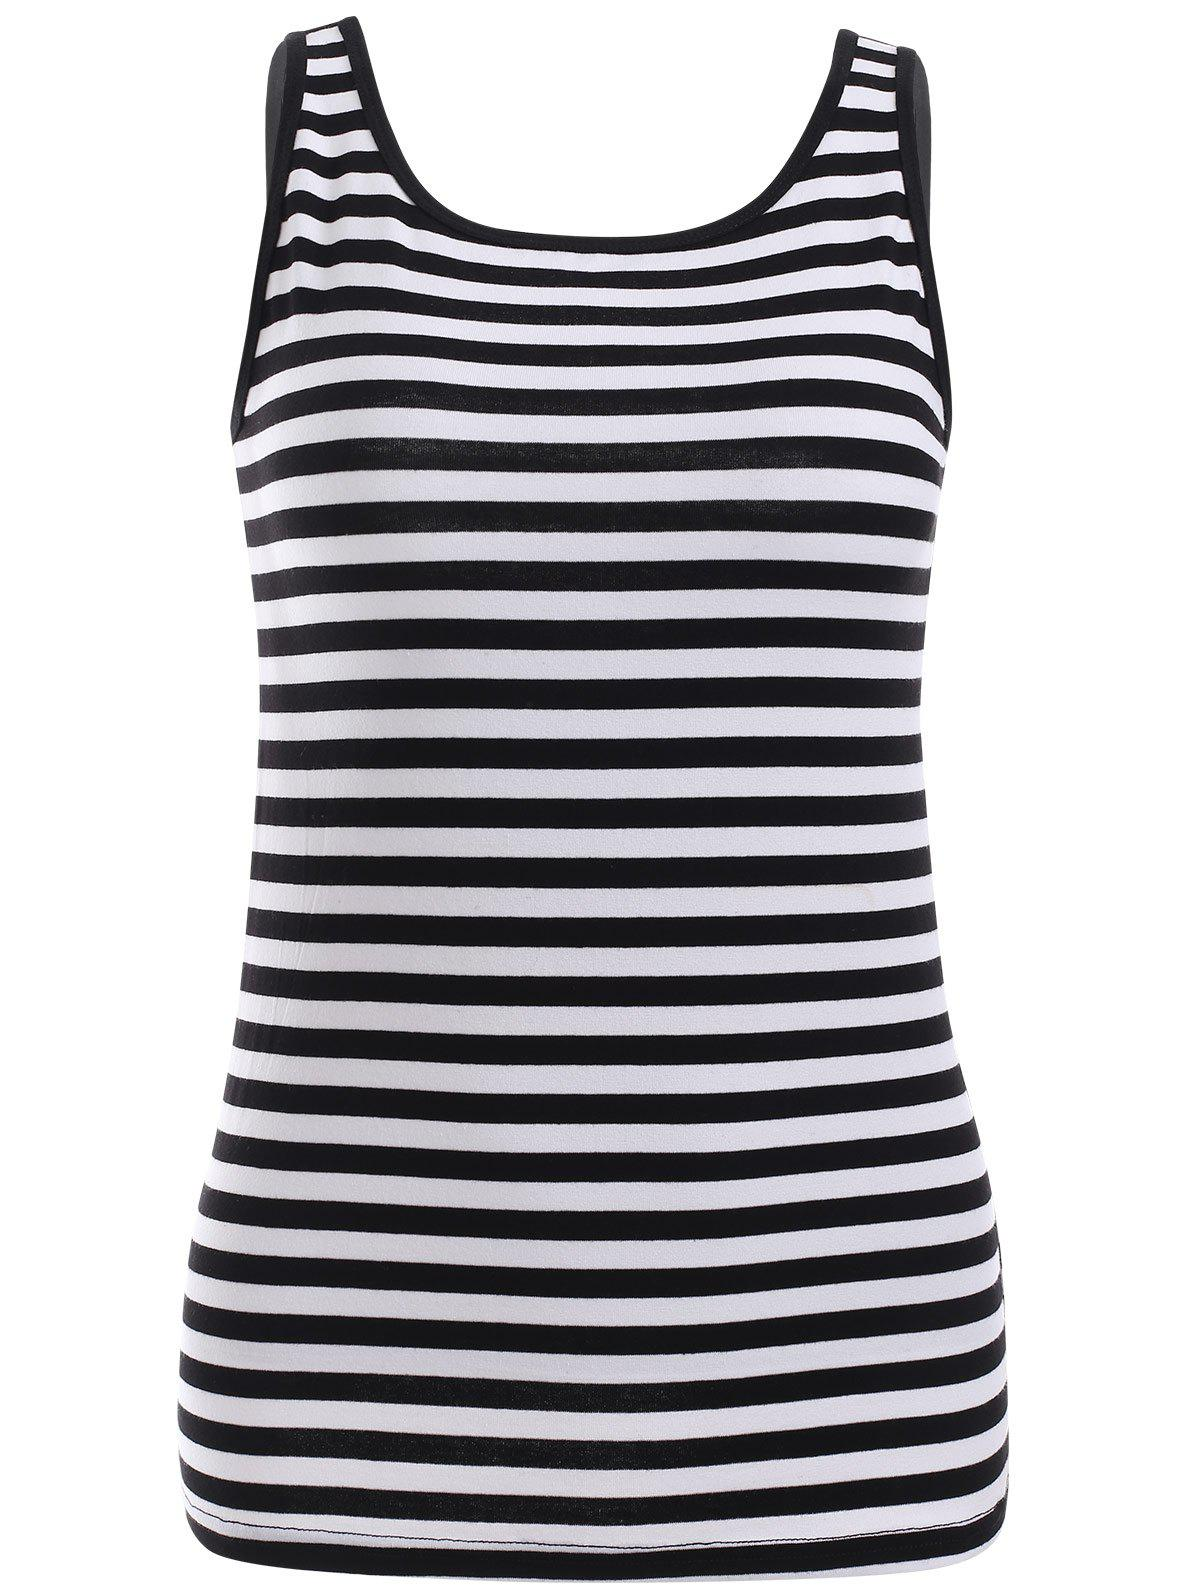 Preppy Black and White Stripe Slimming Tank Top - STRIPE ONE SIZE